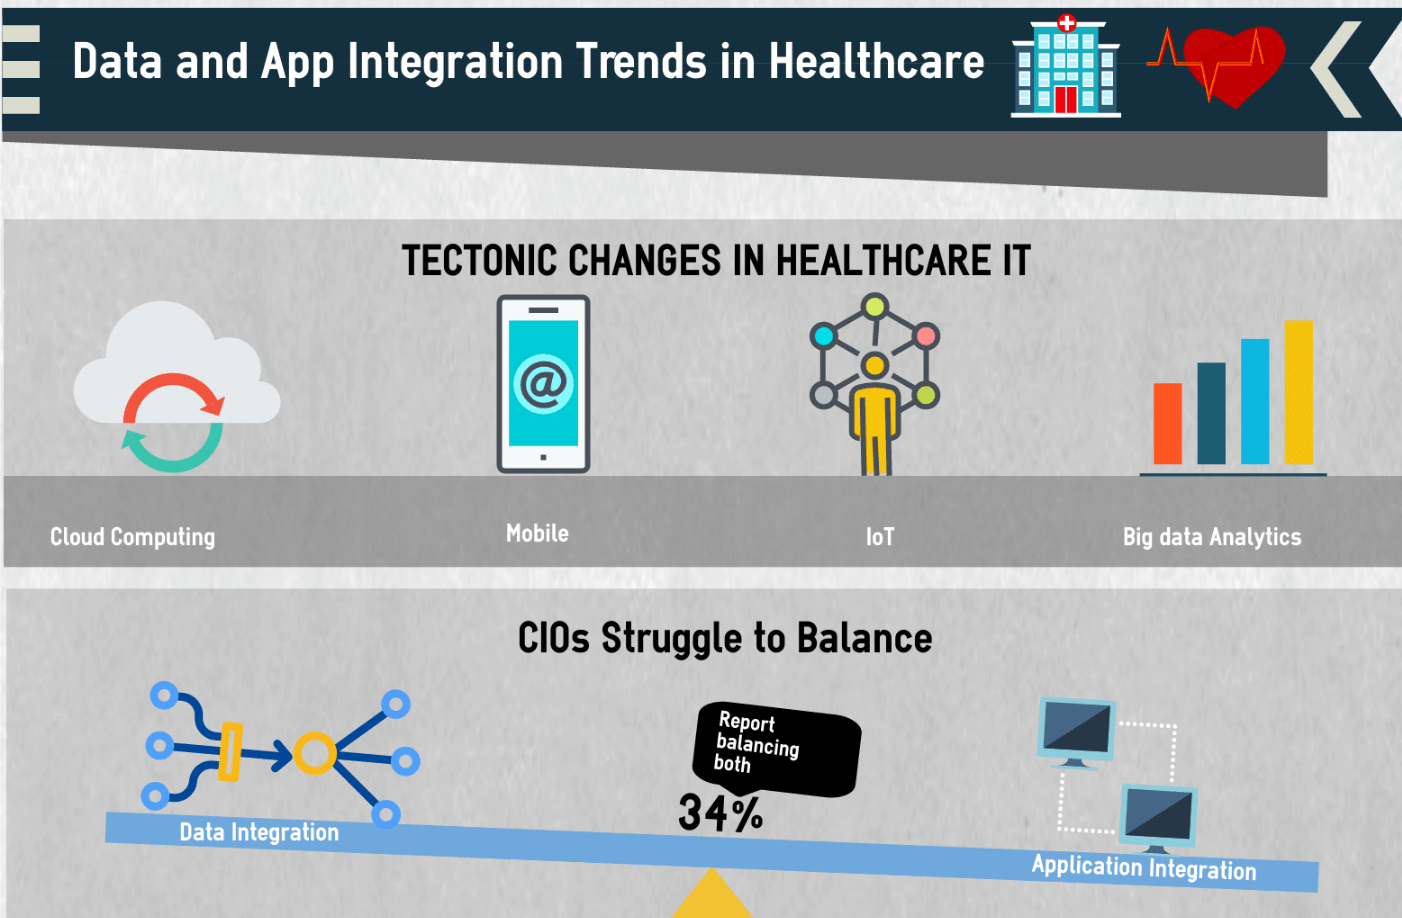 App and Data Integration Trends in Healthcare